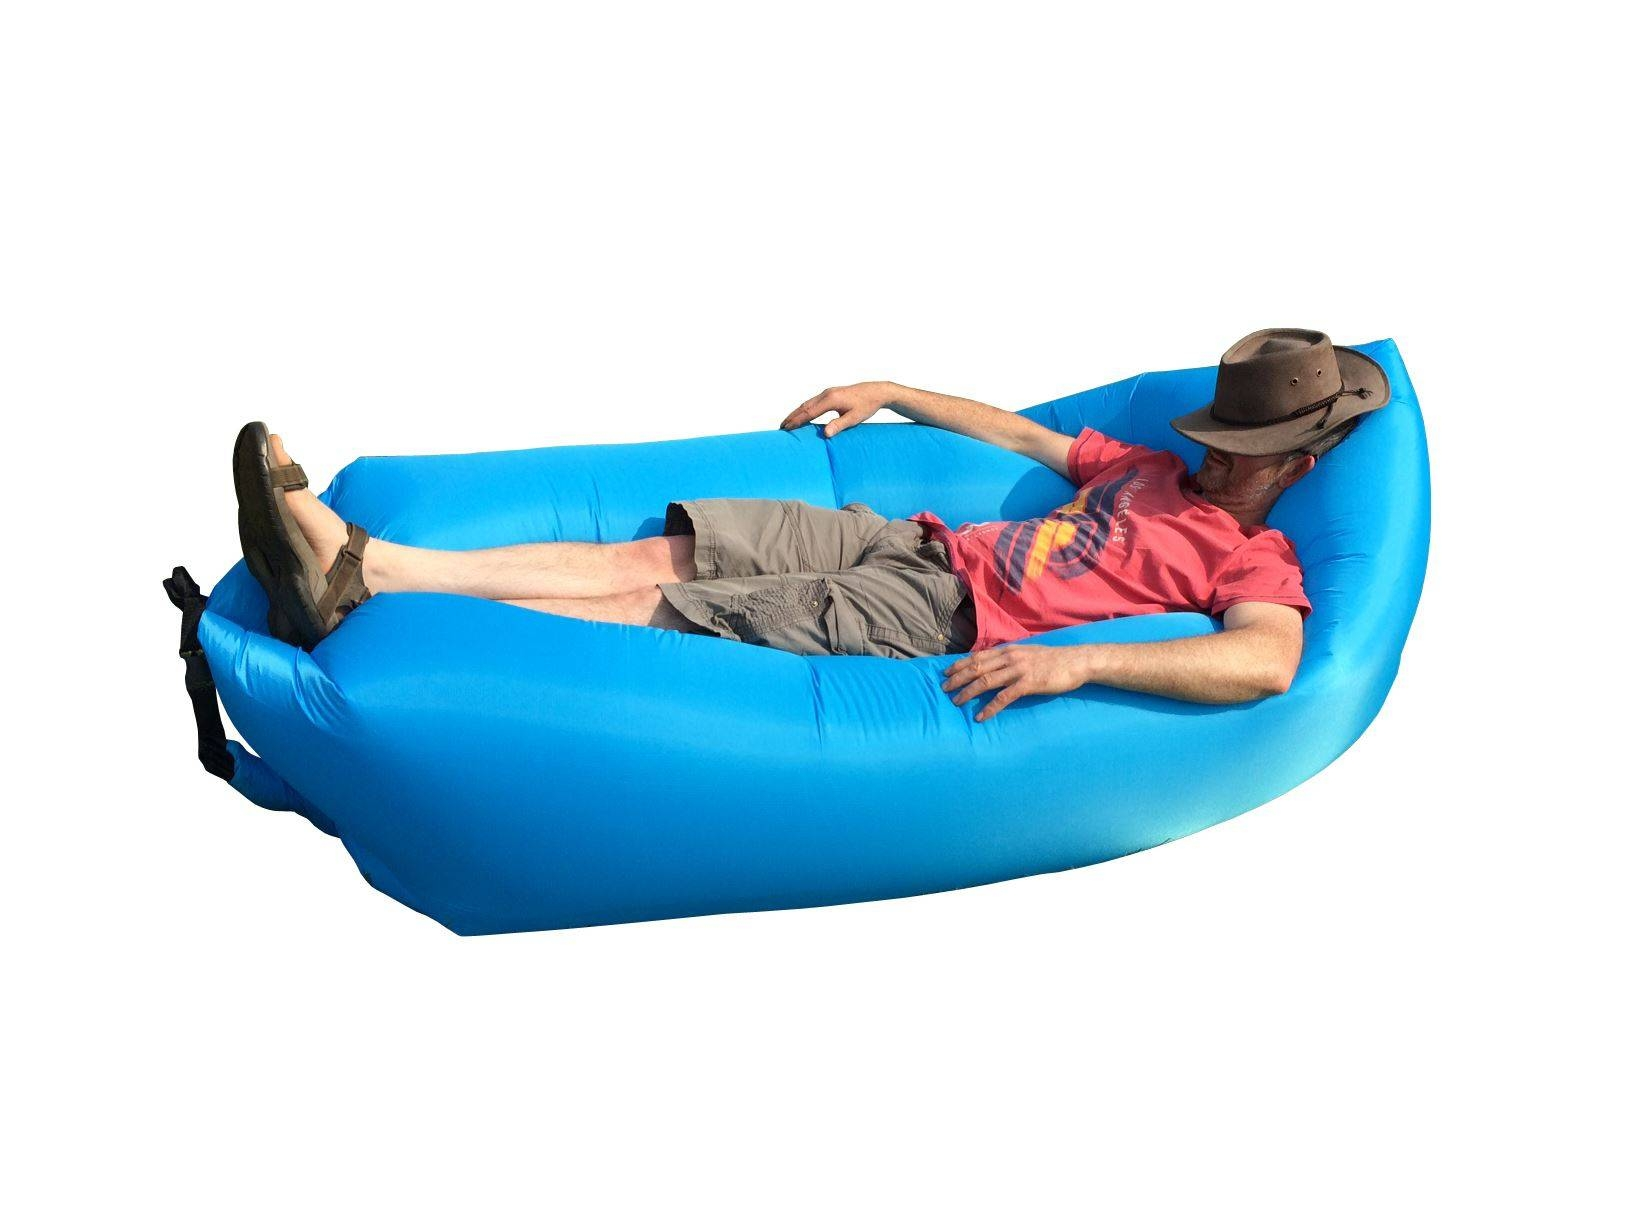 Inflatable Sofa Chair Air Bed Luxury Seat Camping Festival Holiday with regard to Inflatable Sofas And Chairs (Image 6 of 15)